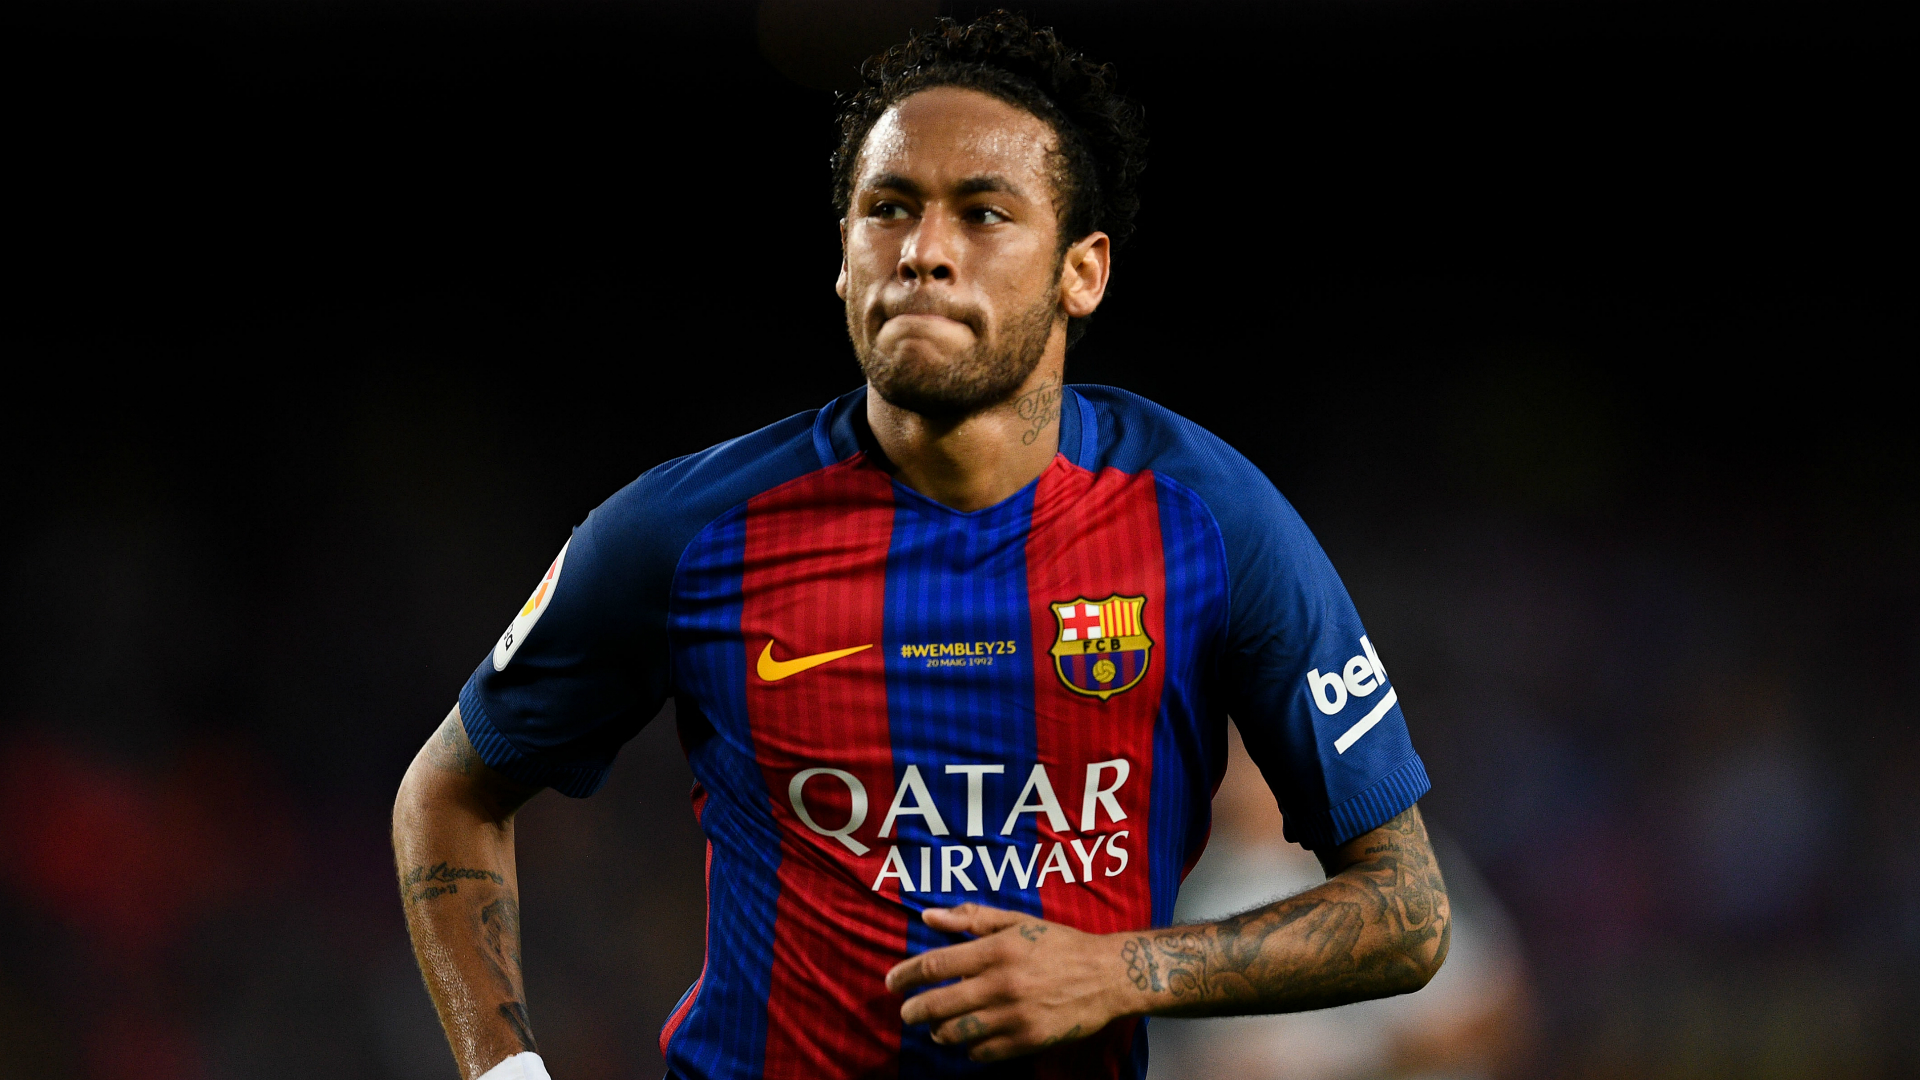 Eric Abidal has given an insight into Barcelona's plans for Neymar and confirmed his admiration of Inter's Lautaro Martinez.